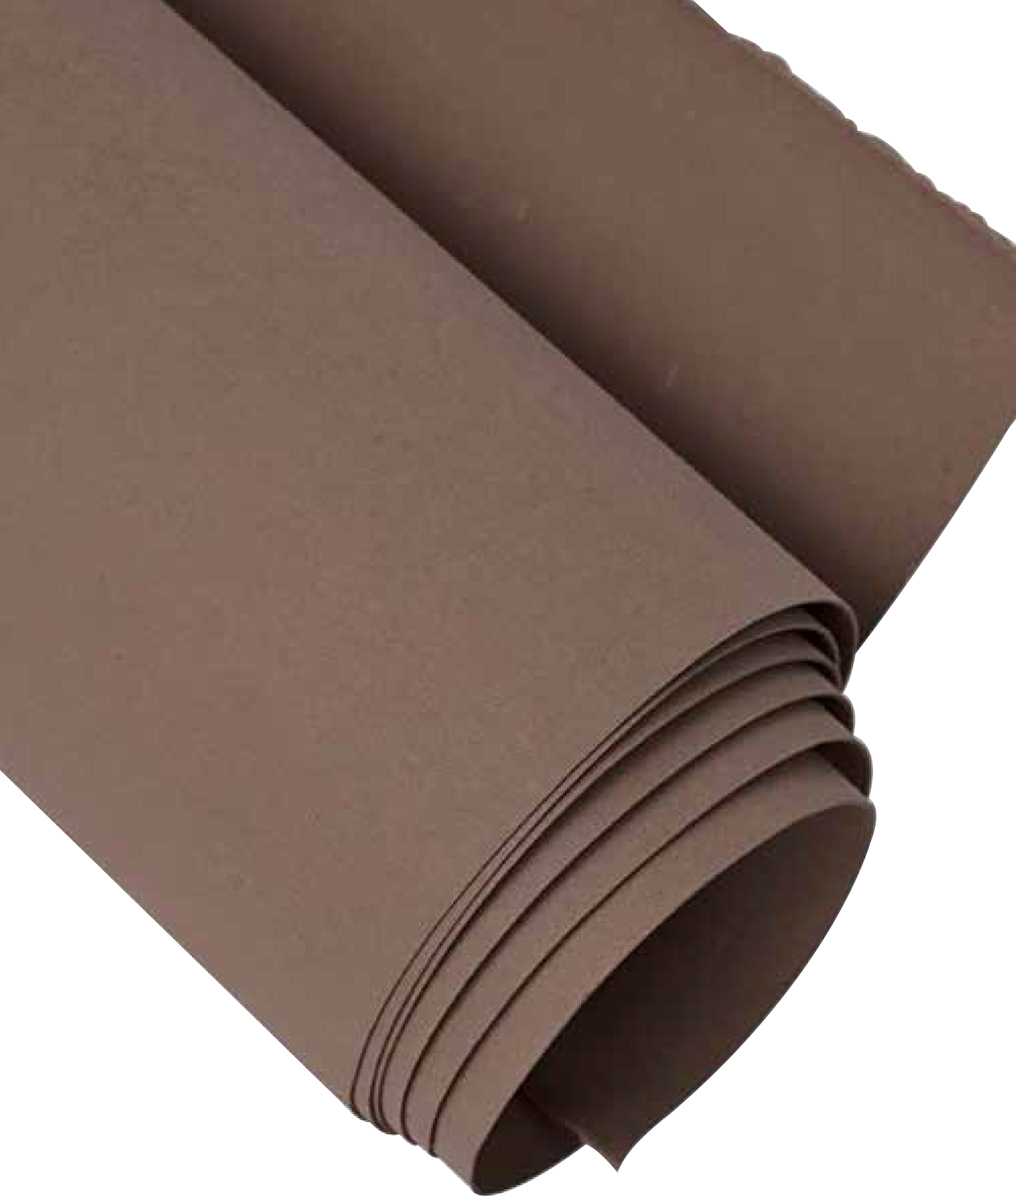 kraft-tex Kraft Paper Fabric 19X1.5yd-Chocolate